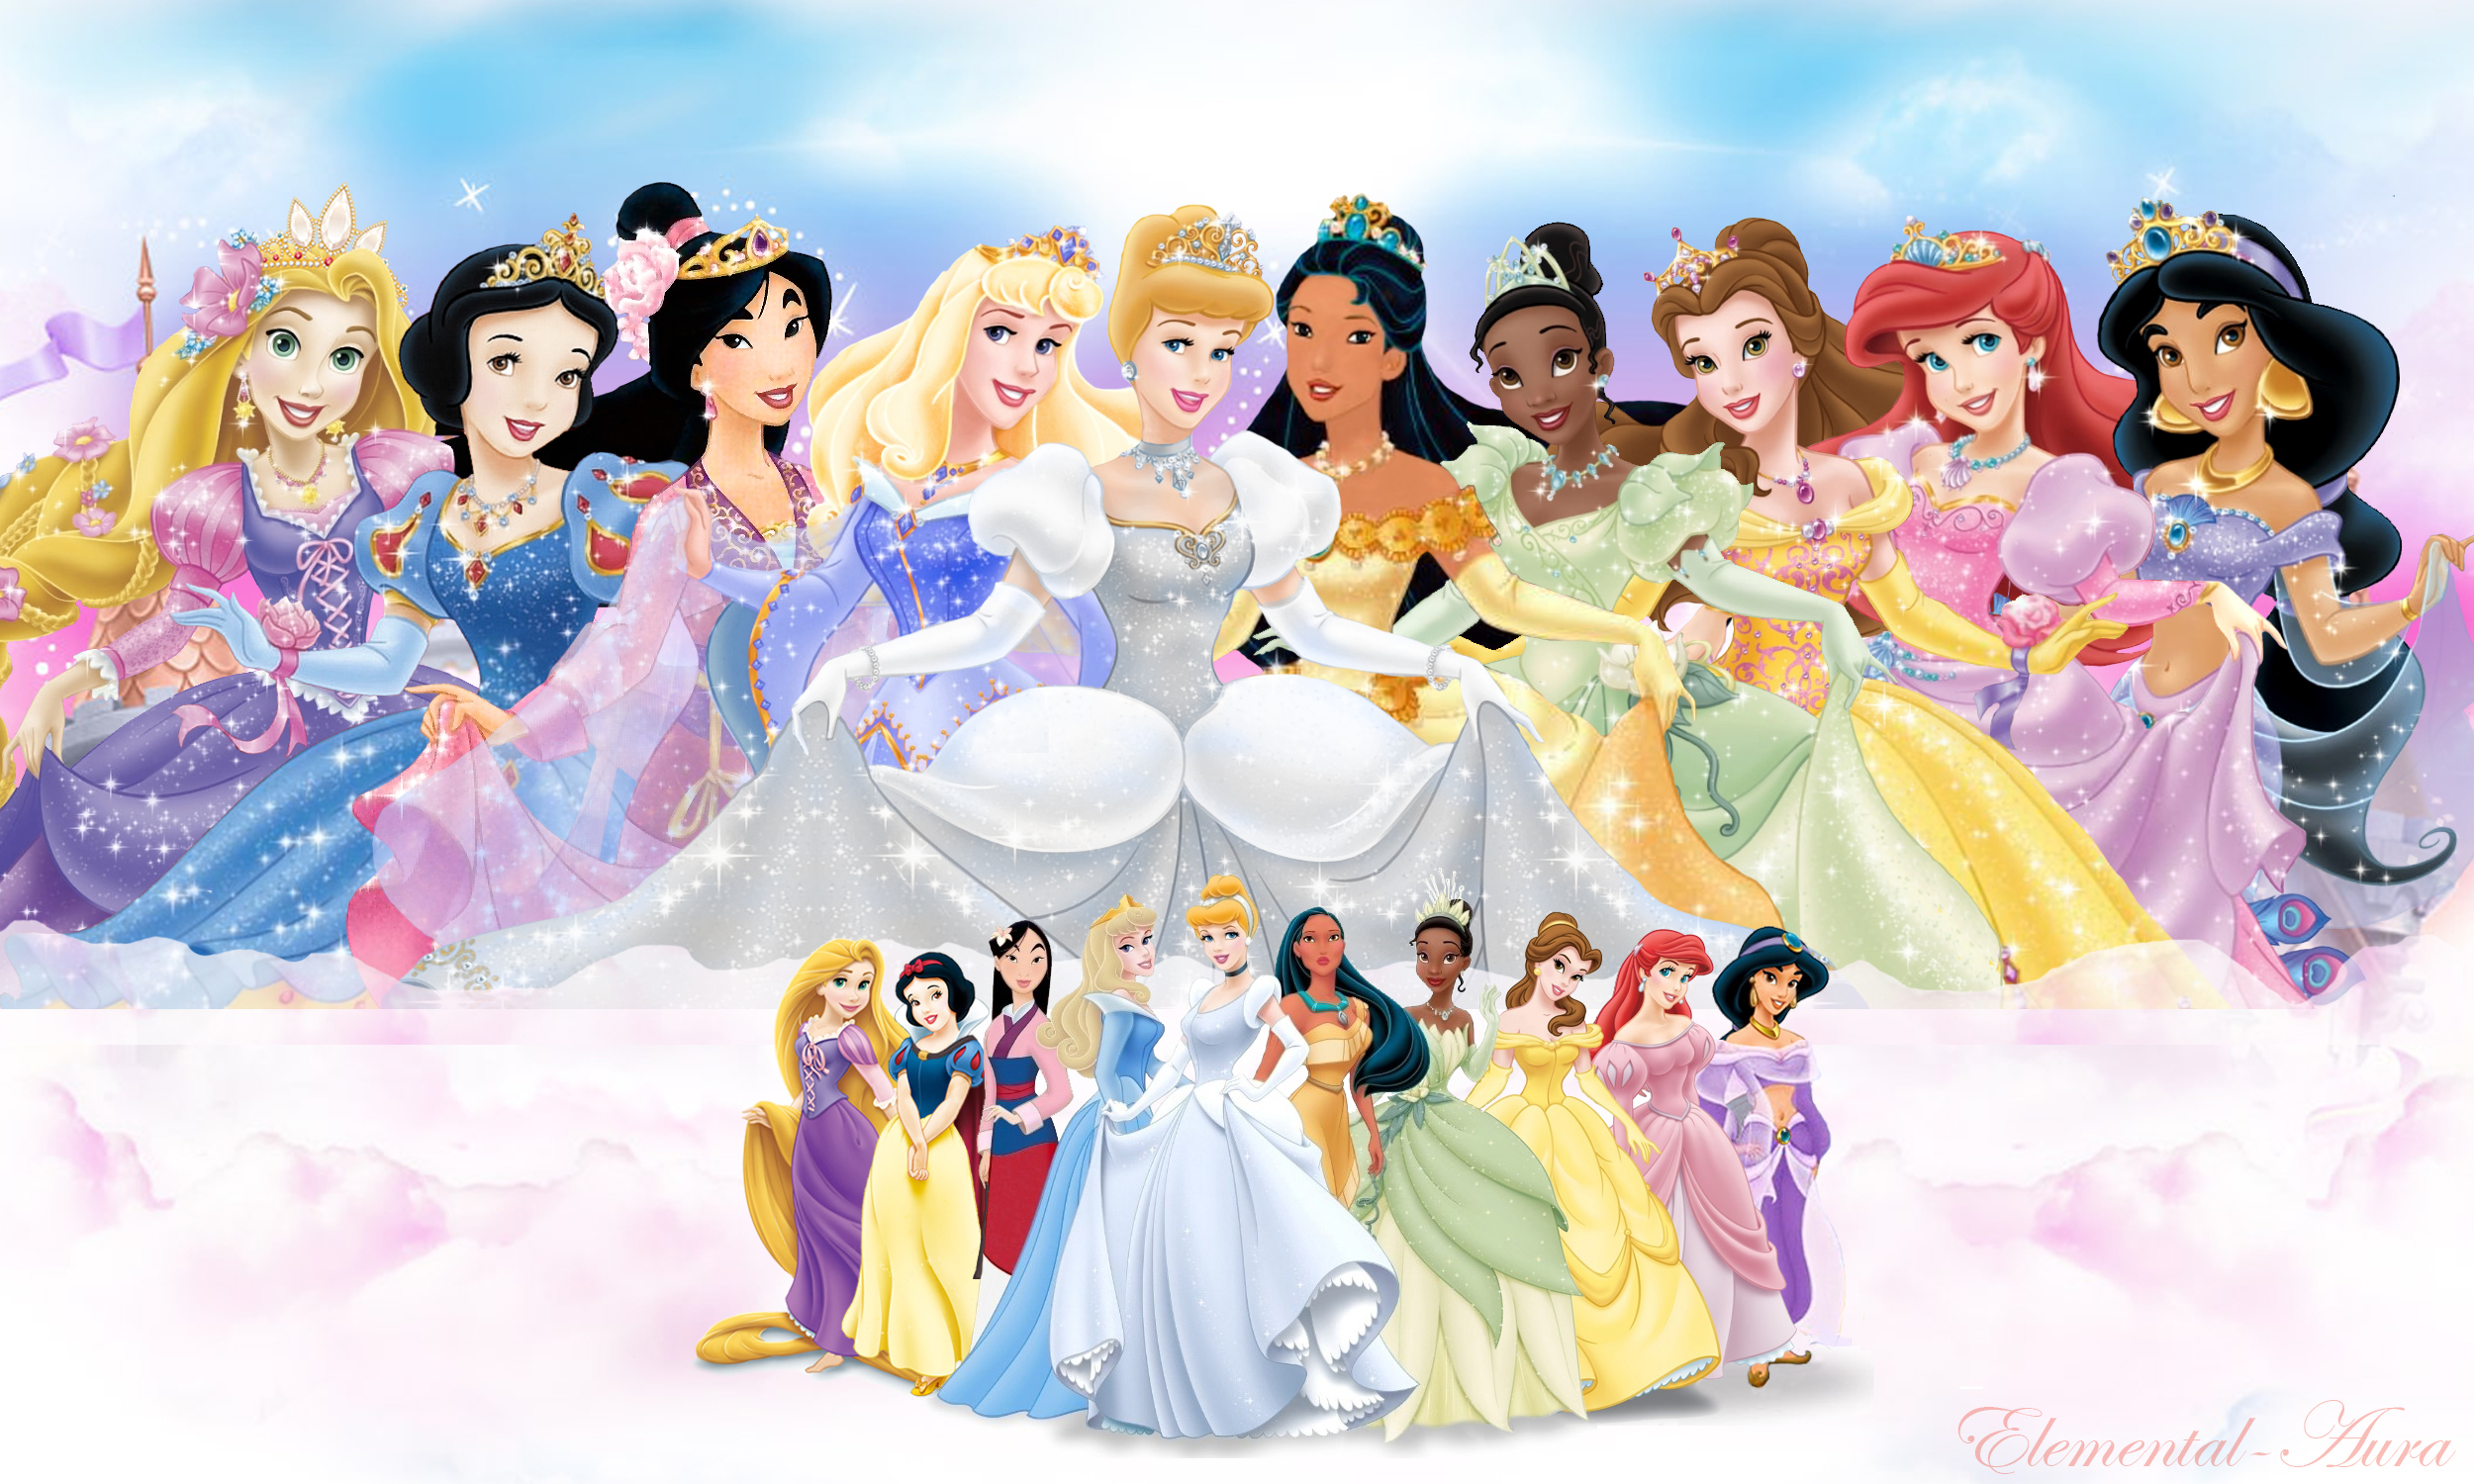 Disney Princess 33 replies